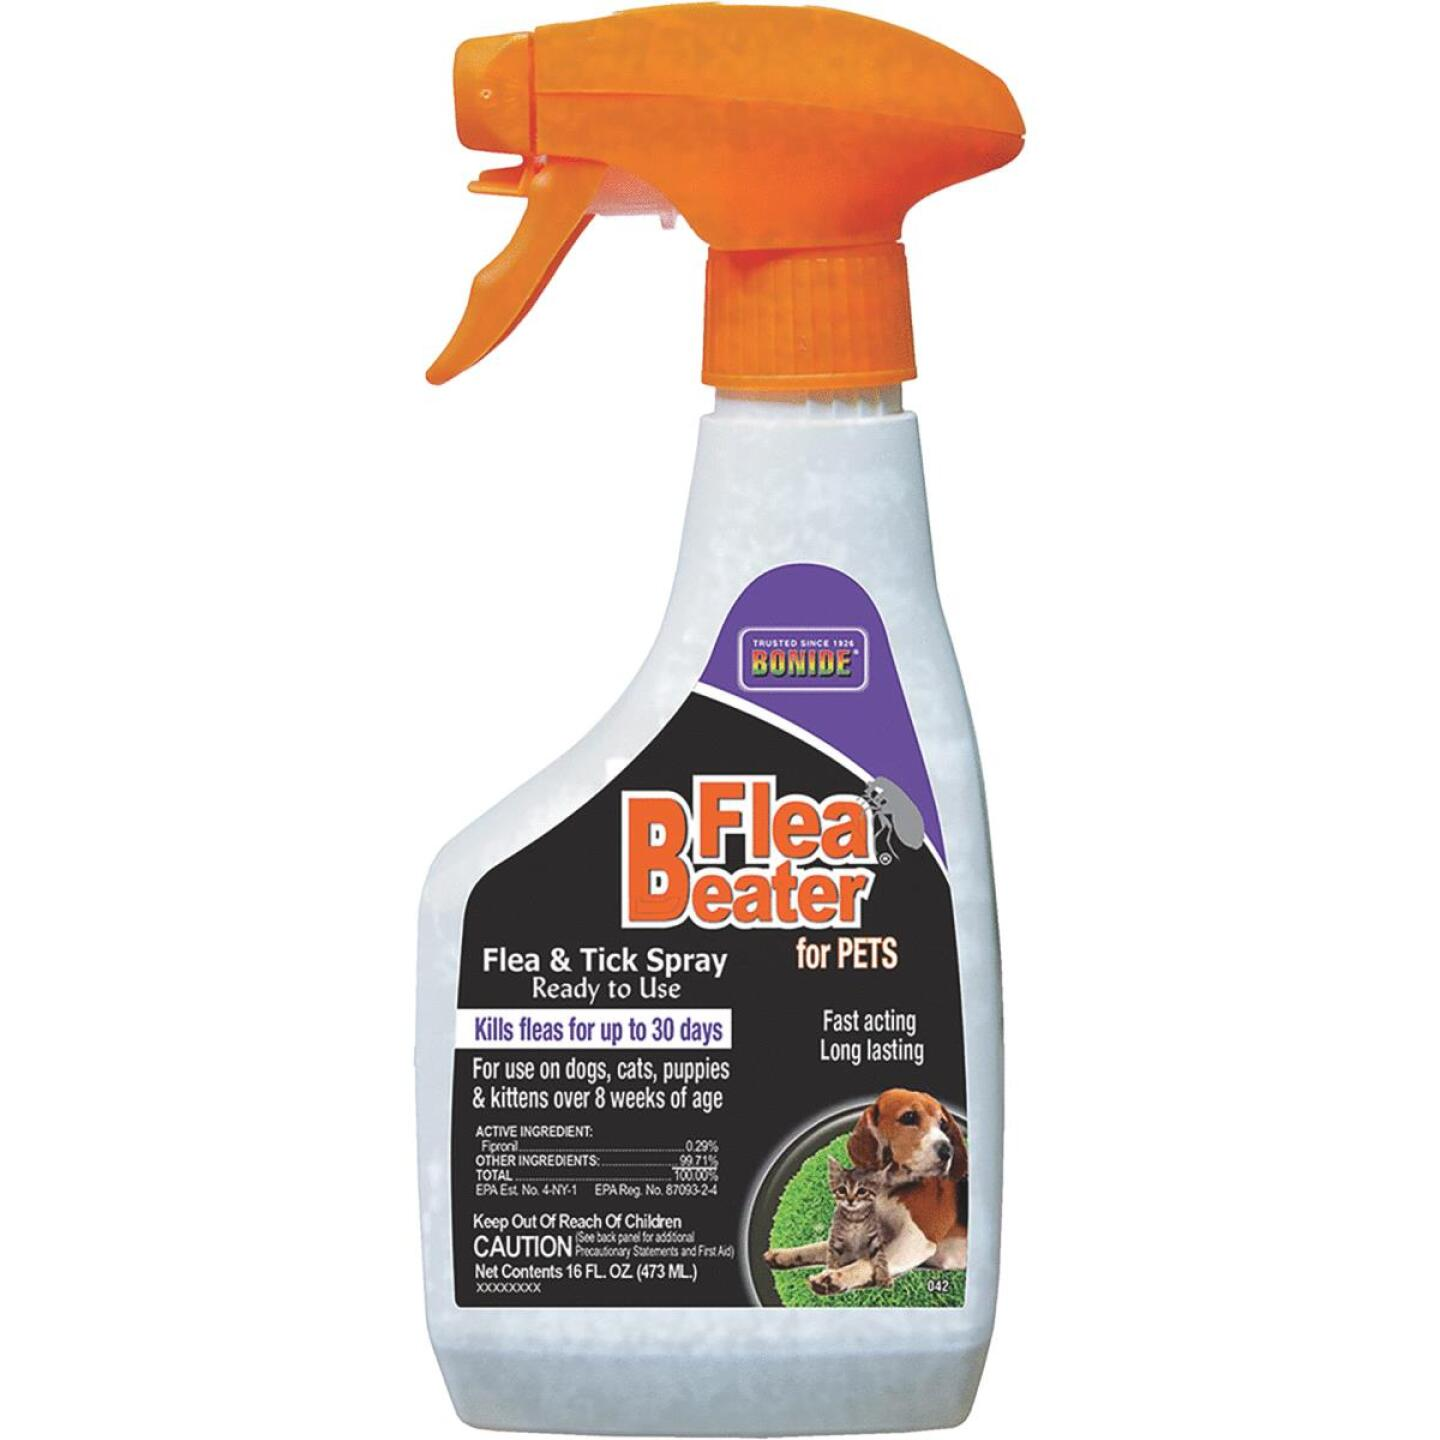 Bonide Flea Beater 30-Day 16 Oz. Flea & Tick Control Spray For Cats & Dogs Image 2